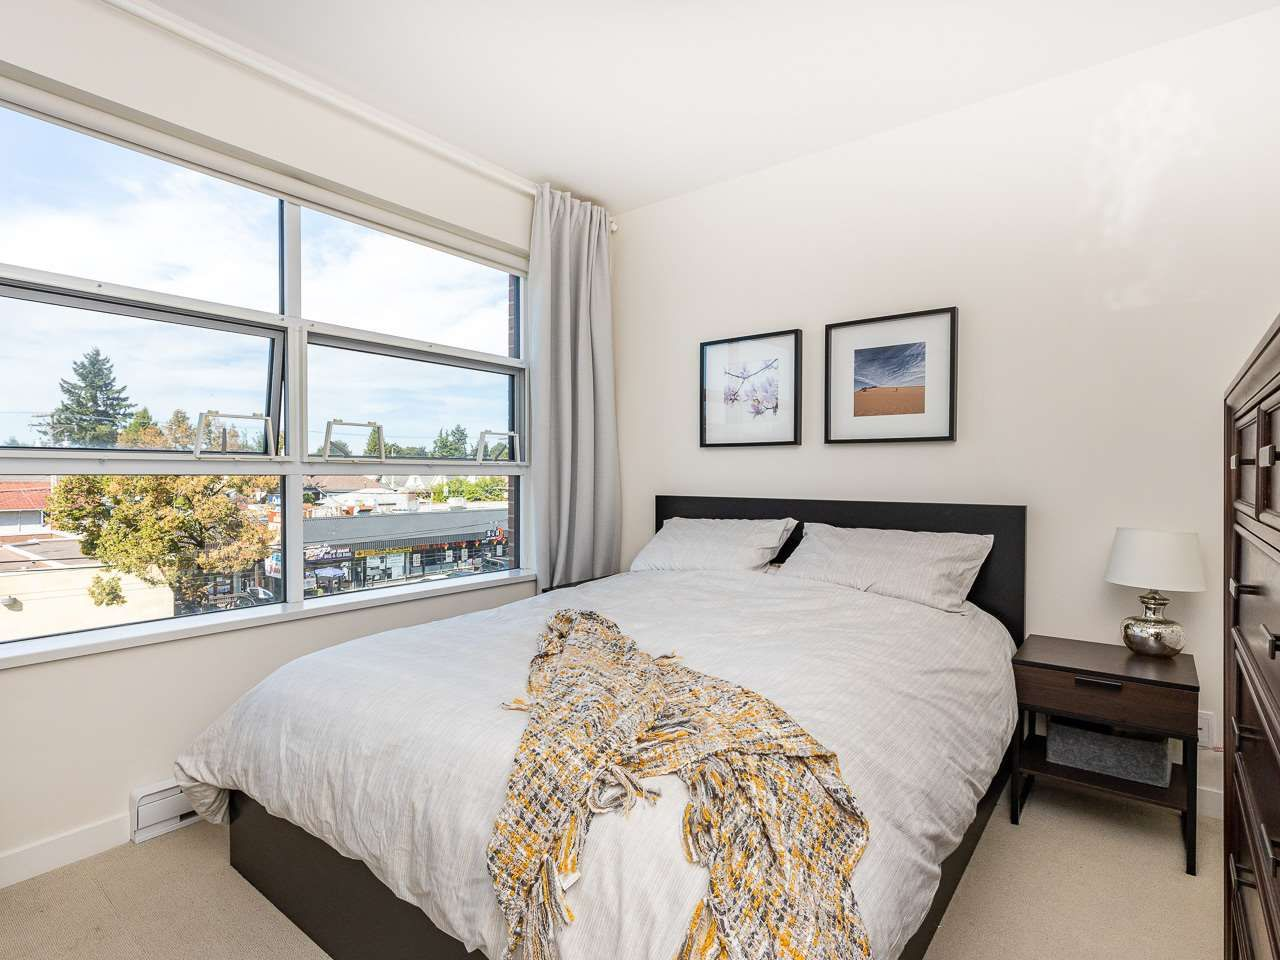 Photo 12: Photos: 306 202 E 24TH AVENUE in Vancouver: Main Condo for sale (Vancouver East)  : MLS®# R2406713